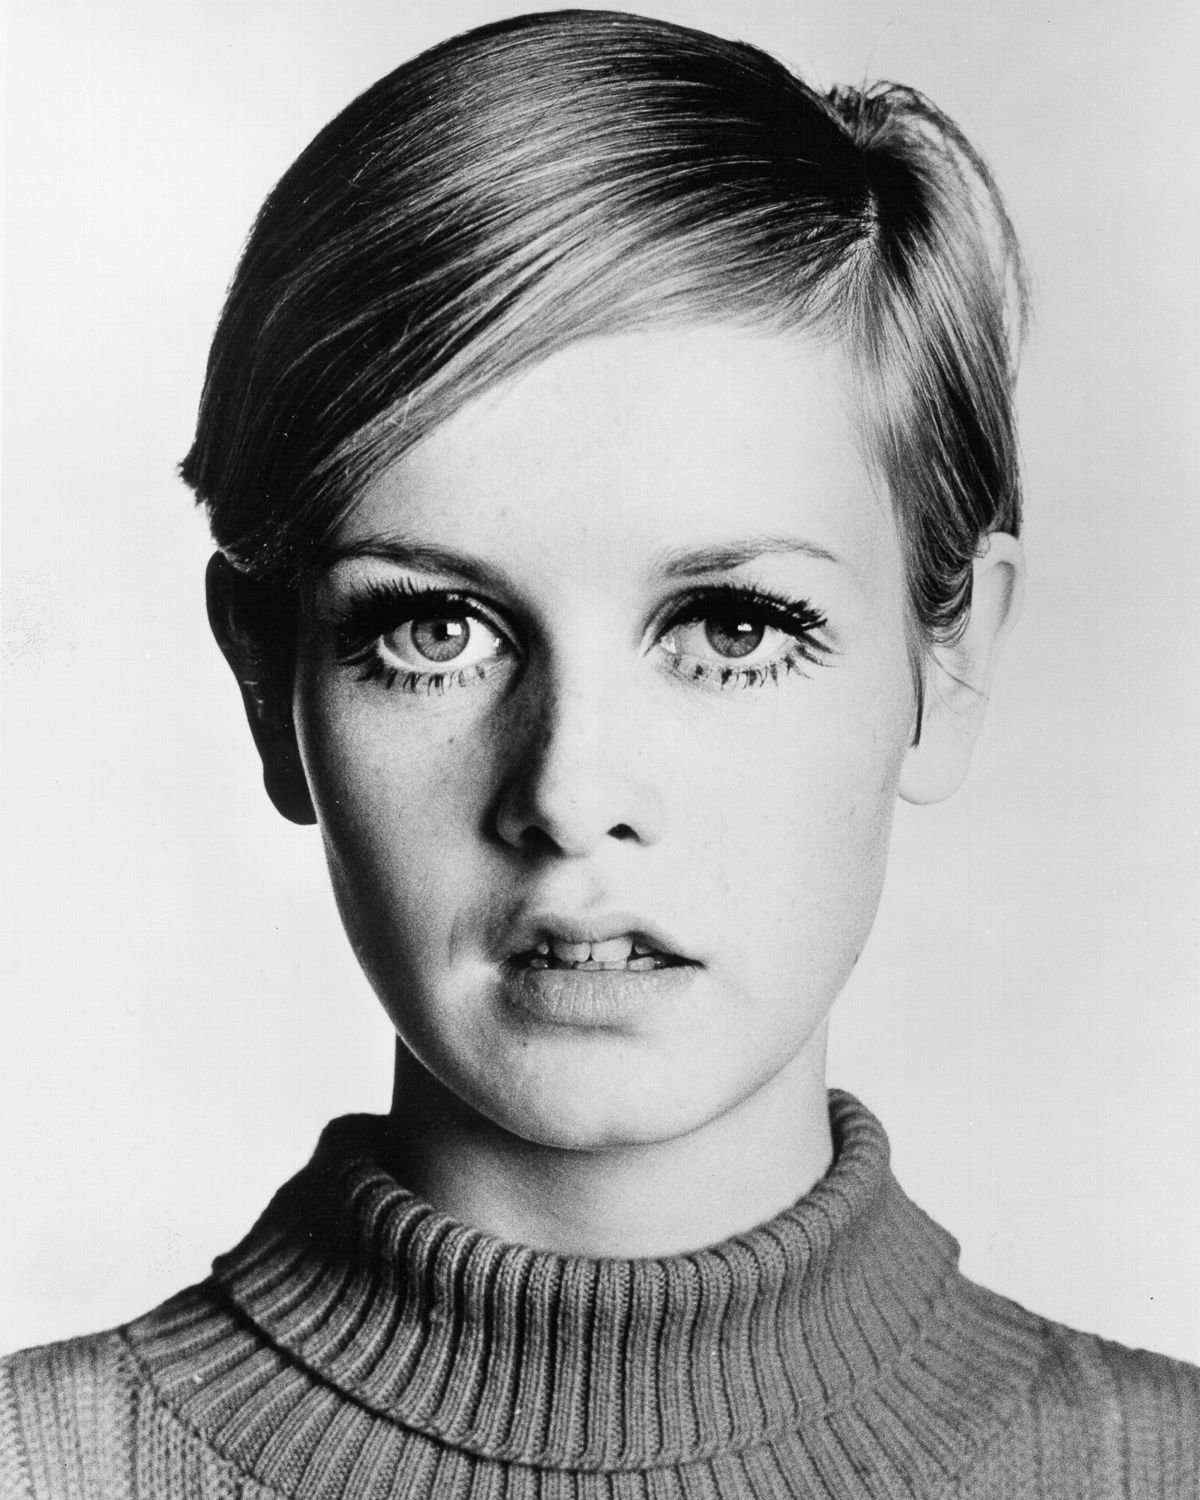 the achievements and influence of leslie twiggy hornby From twiggy to kate moss, the industry has been idealizing such extreme slenderness, placing an immediately negative effect on a normal woman's self-esteem and encouraging them to hate their bodies, which eventually leads to dangerous methods of losing weight.